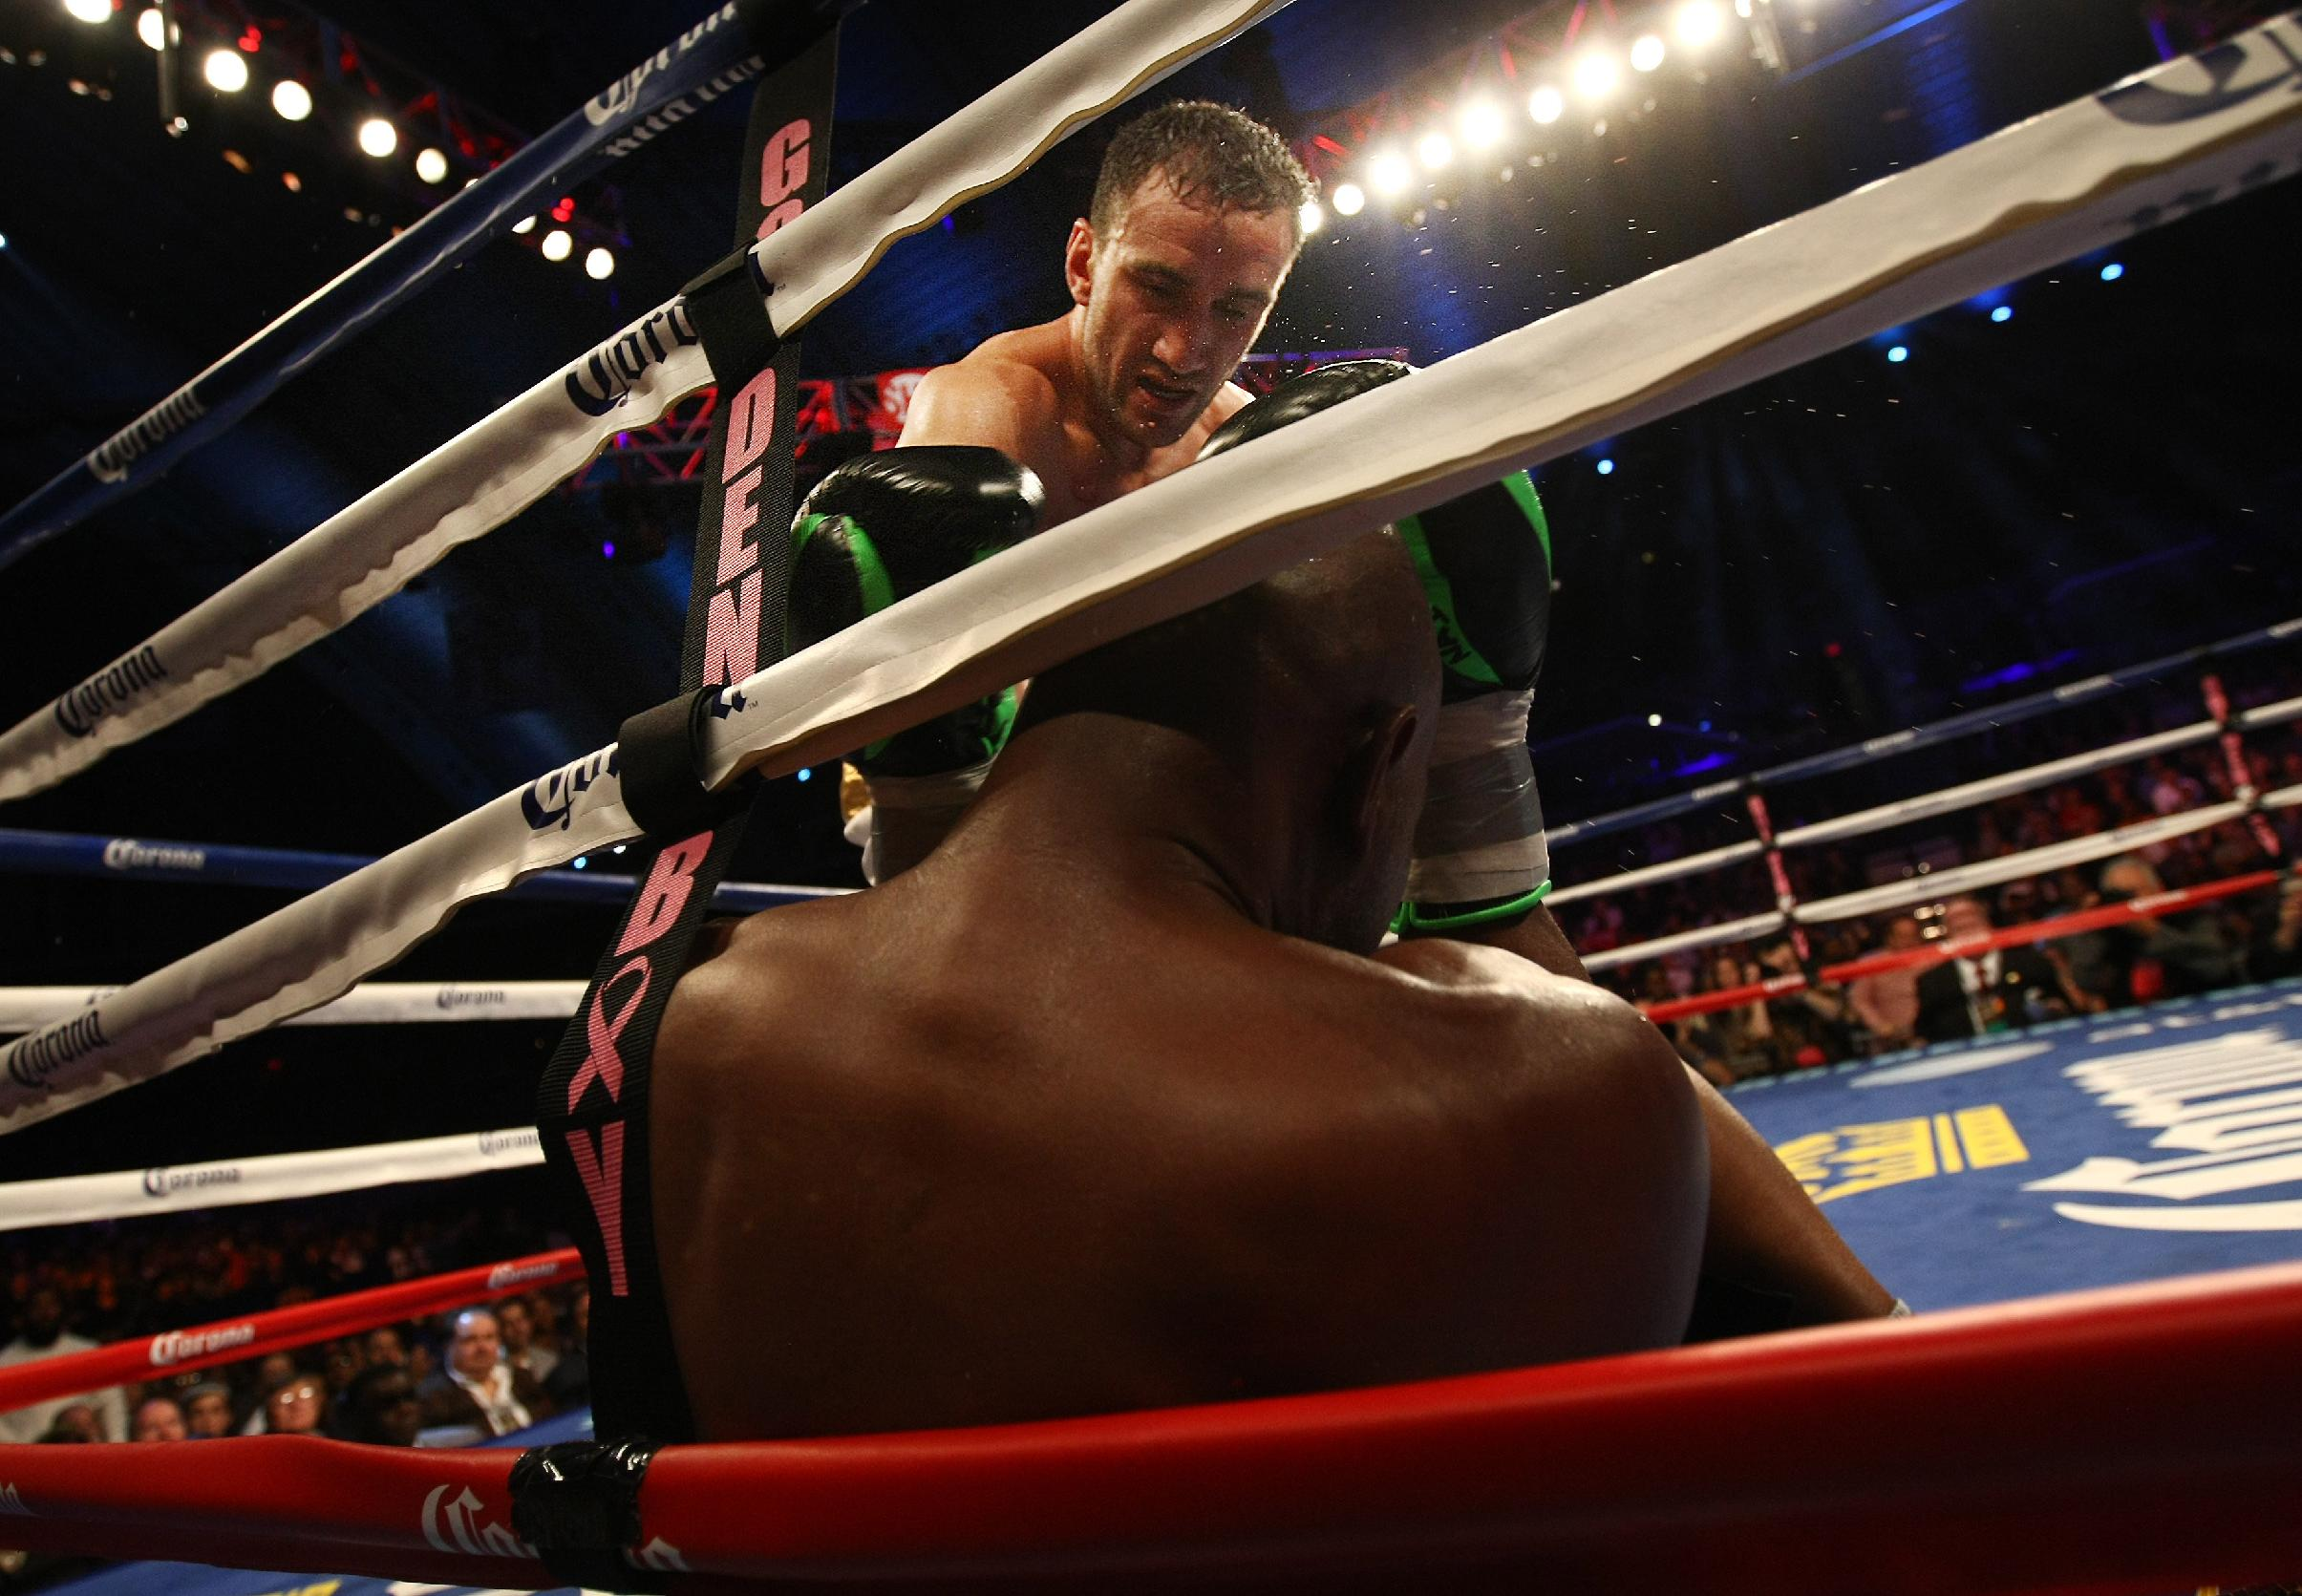 Karo Murat, standing, of Germany throws a punch on Bernard Hopkins, of Philadelphia, PA who was sitting on the ground against the ropes during the sixth round of IBF Light Heavyweight Title in Atlantic City, N.J. on Saturday, Oct. 26, 2013. Hopkins won by unanimous decision after 12 rounds